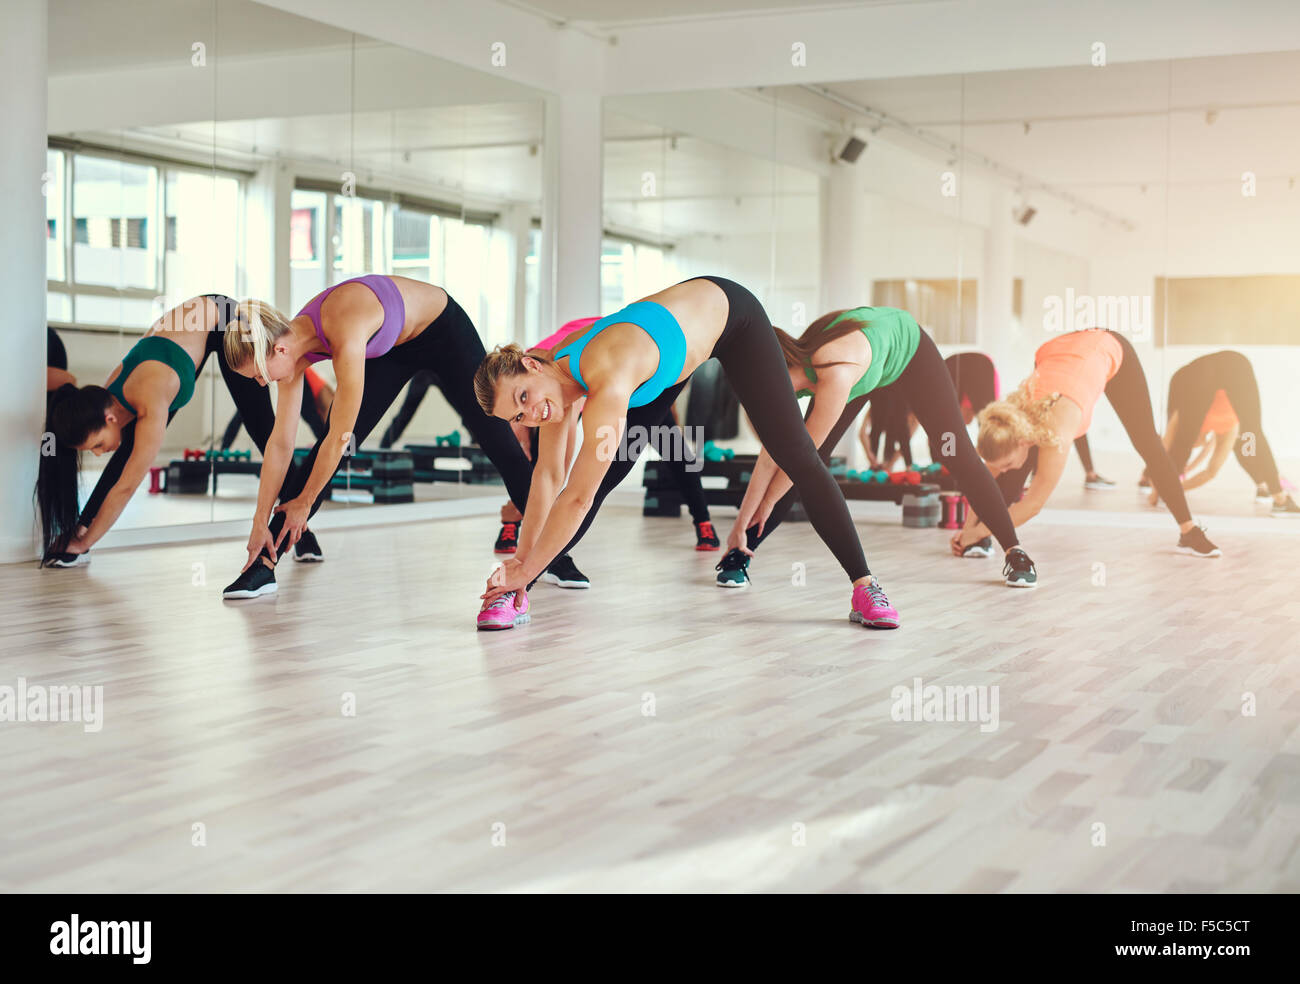 Group of women in colorful cloths in a gym doing aerobics or warming up with gymnastics and stretching exercises - Stock Image